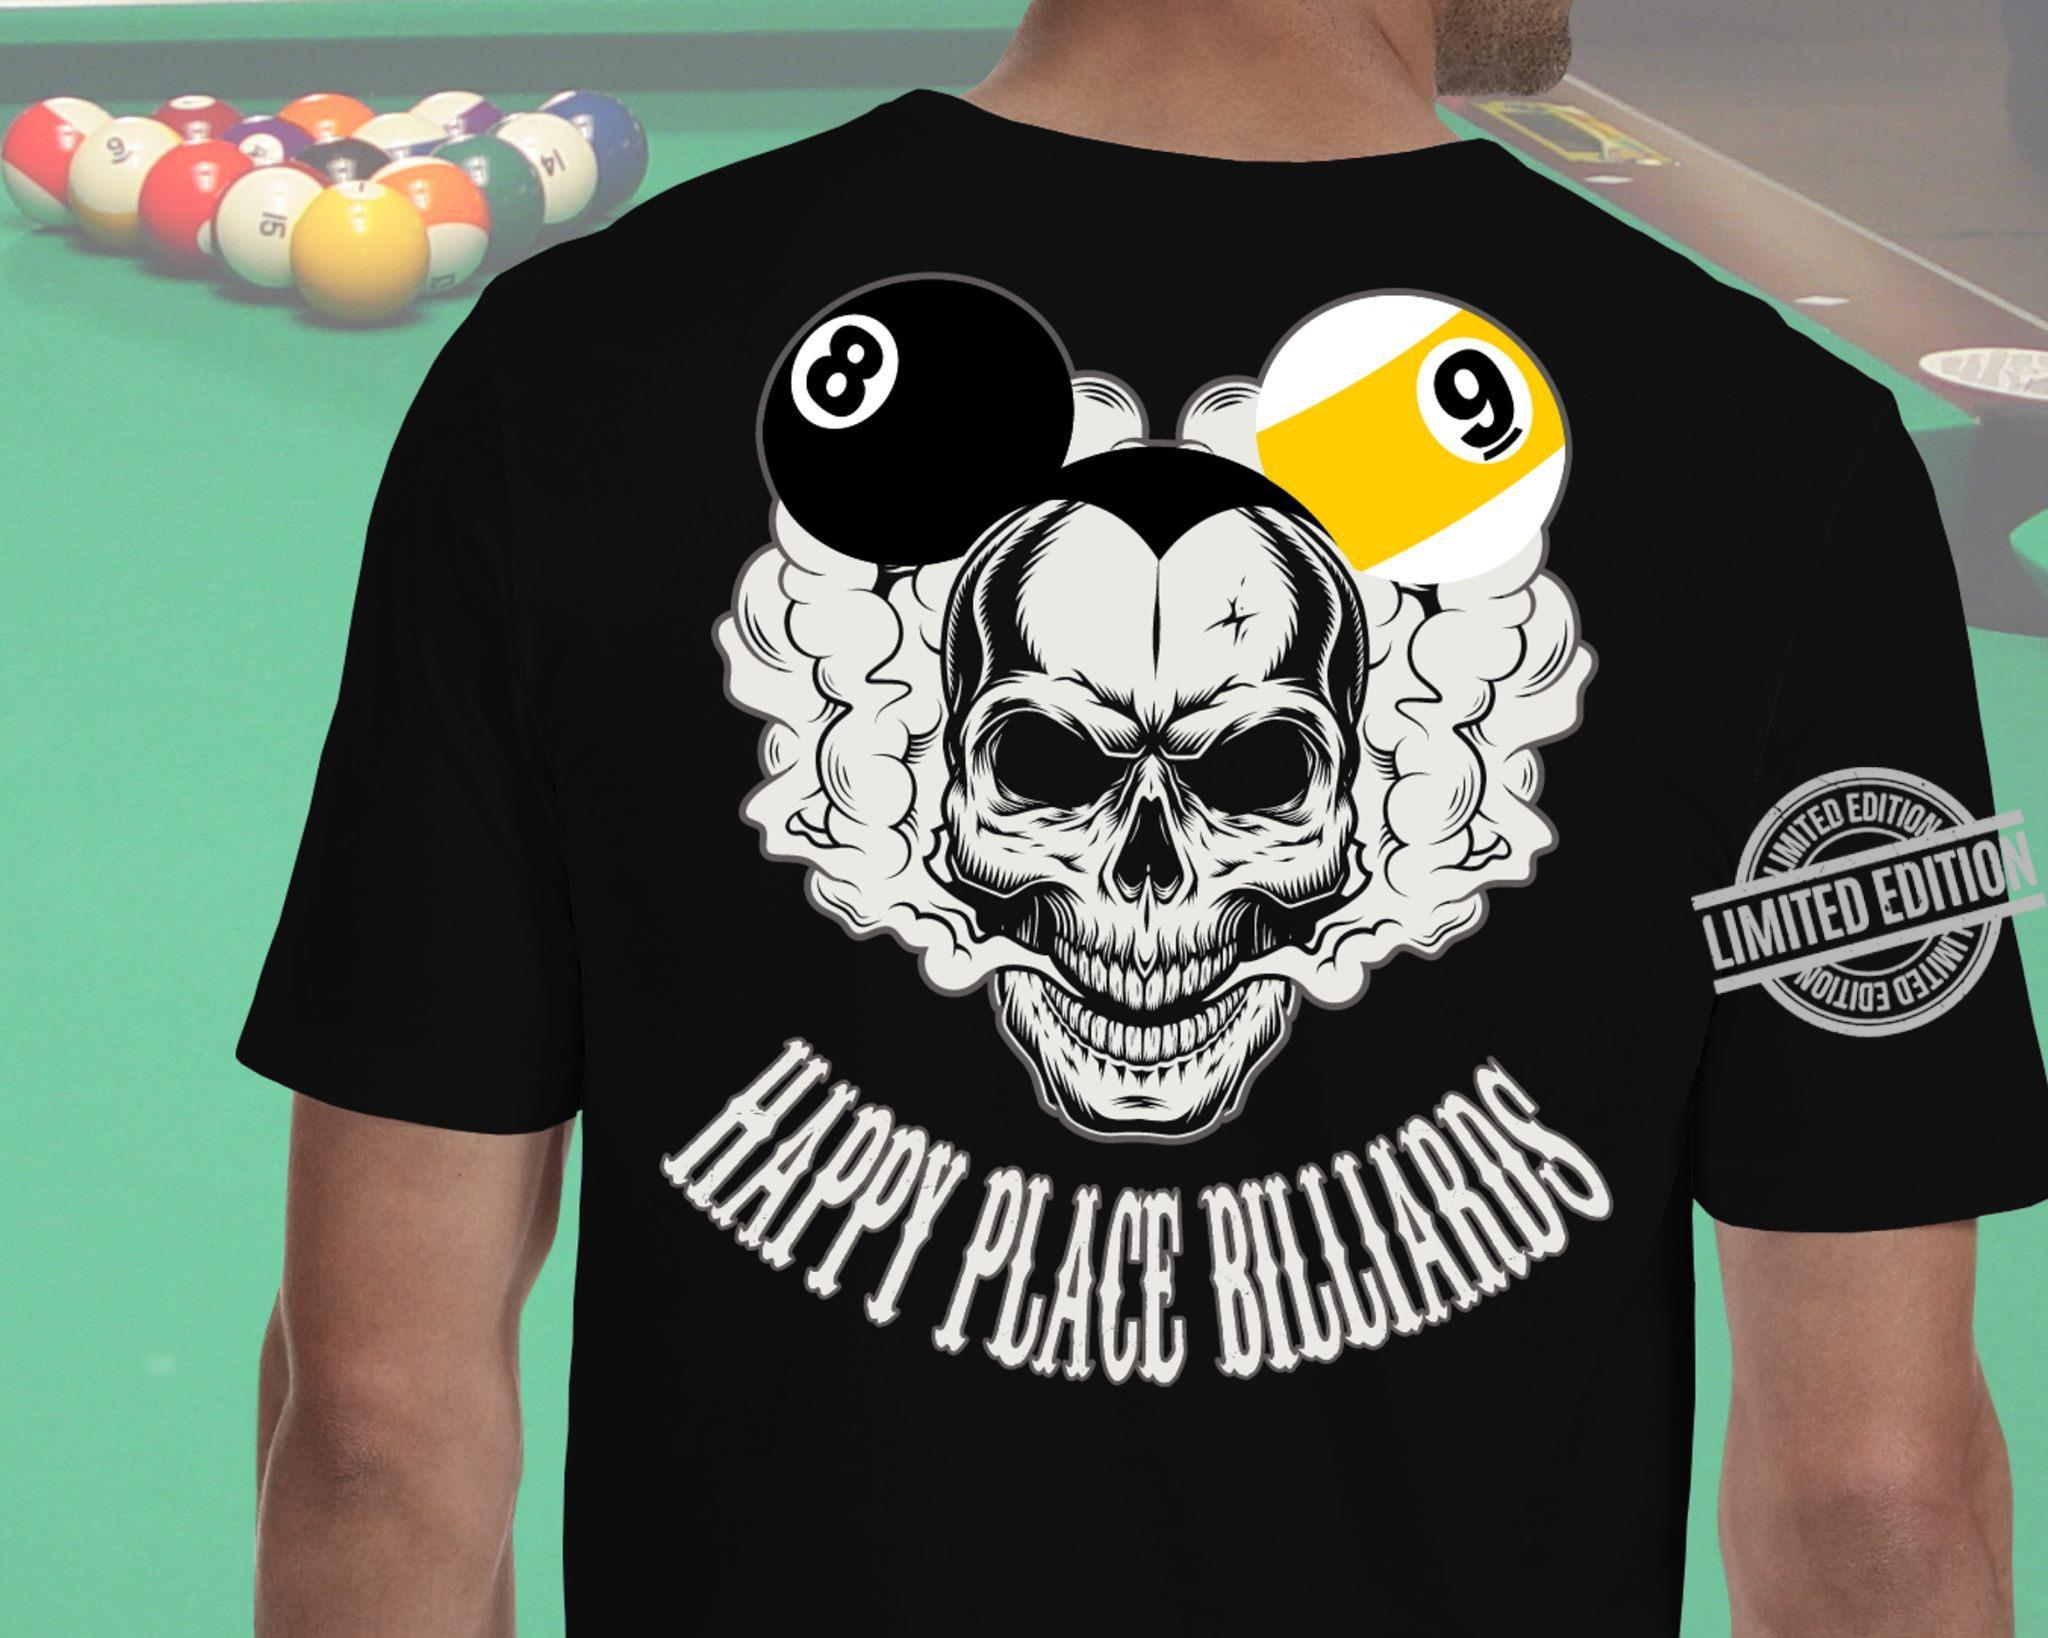 Happy Place Billards Shirt